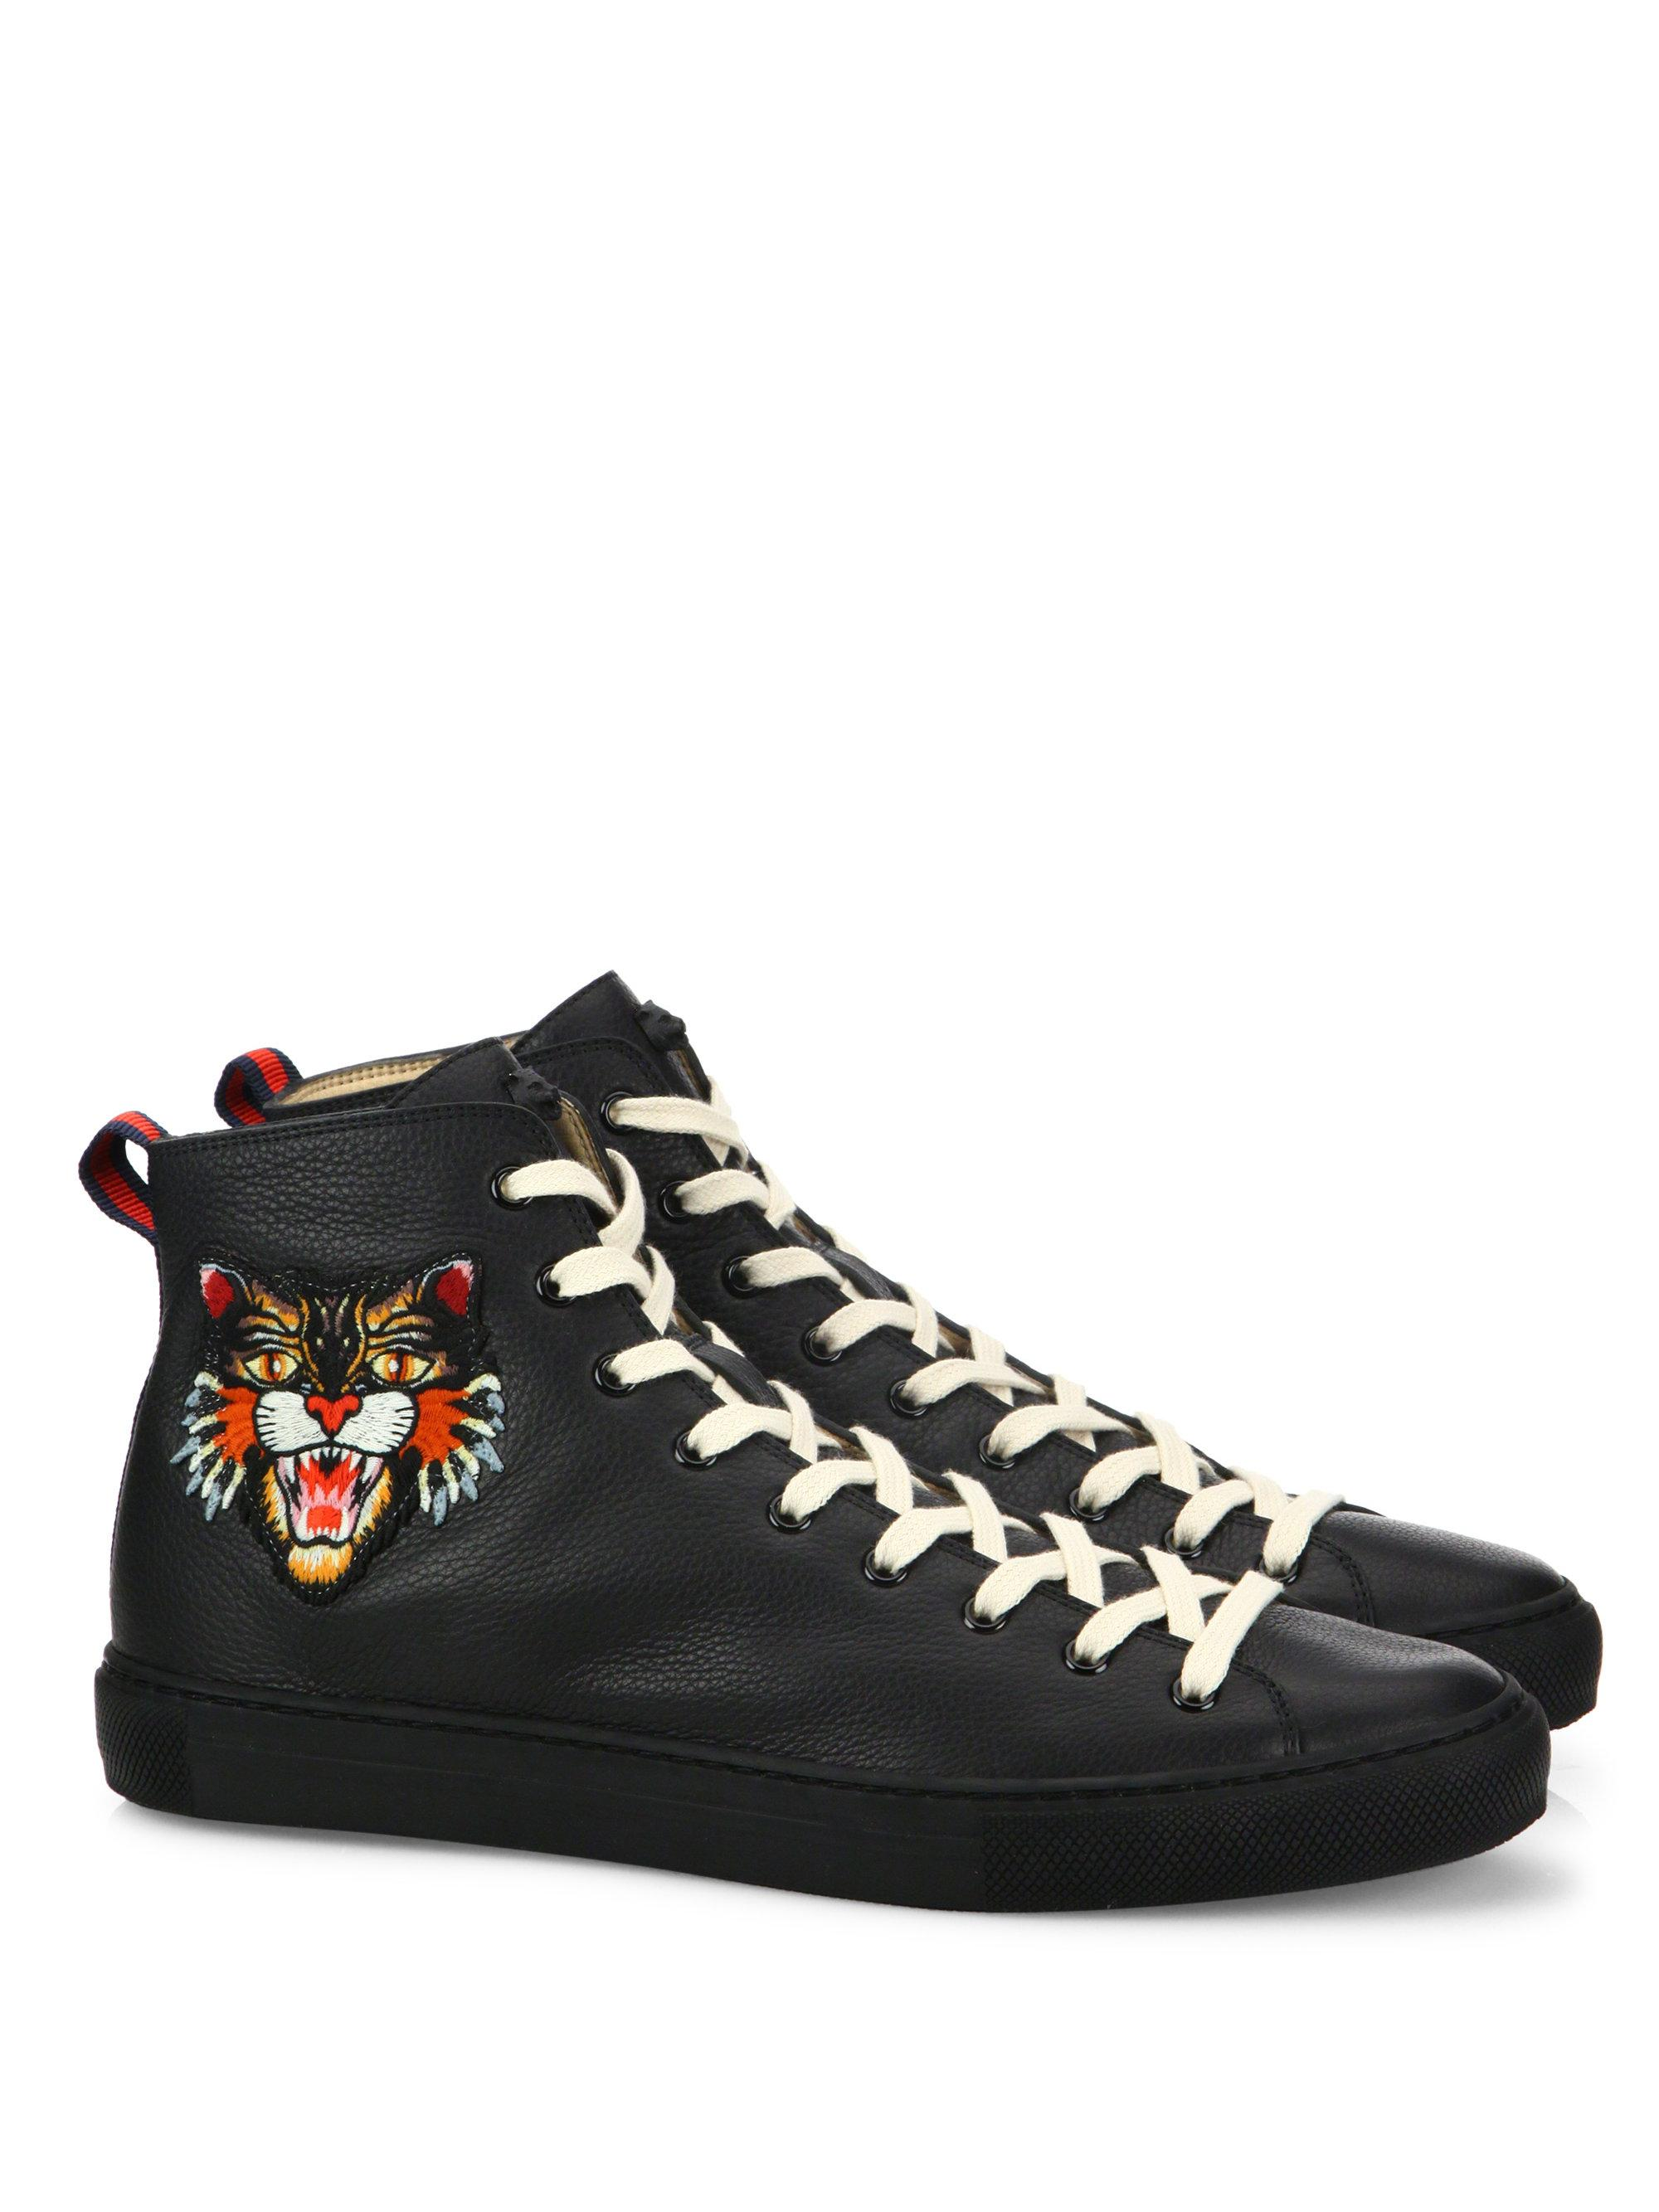 Gucci. Women's Black Major Tiger Ufo Embroidered Leather ...